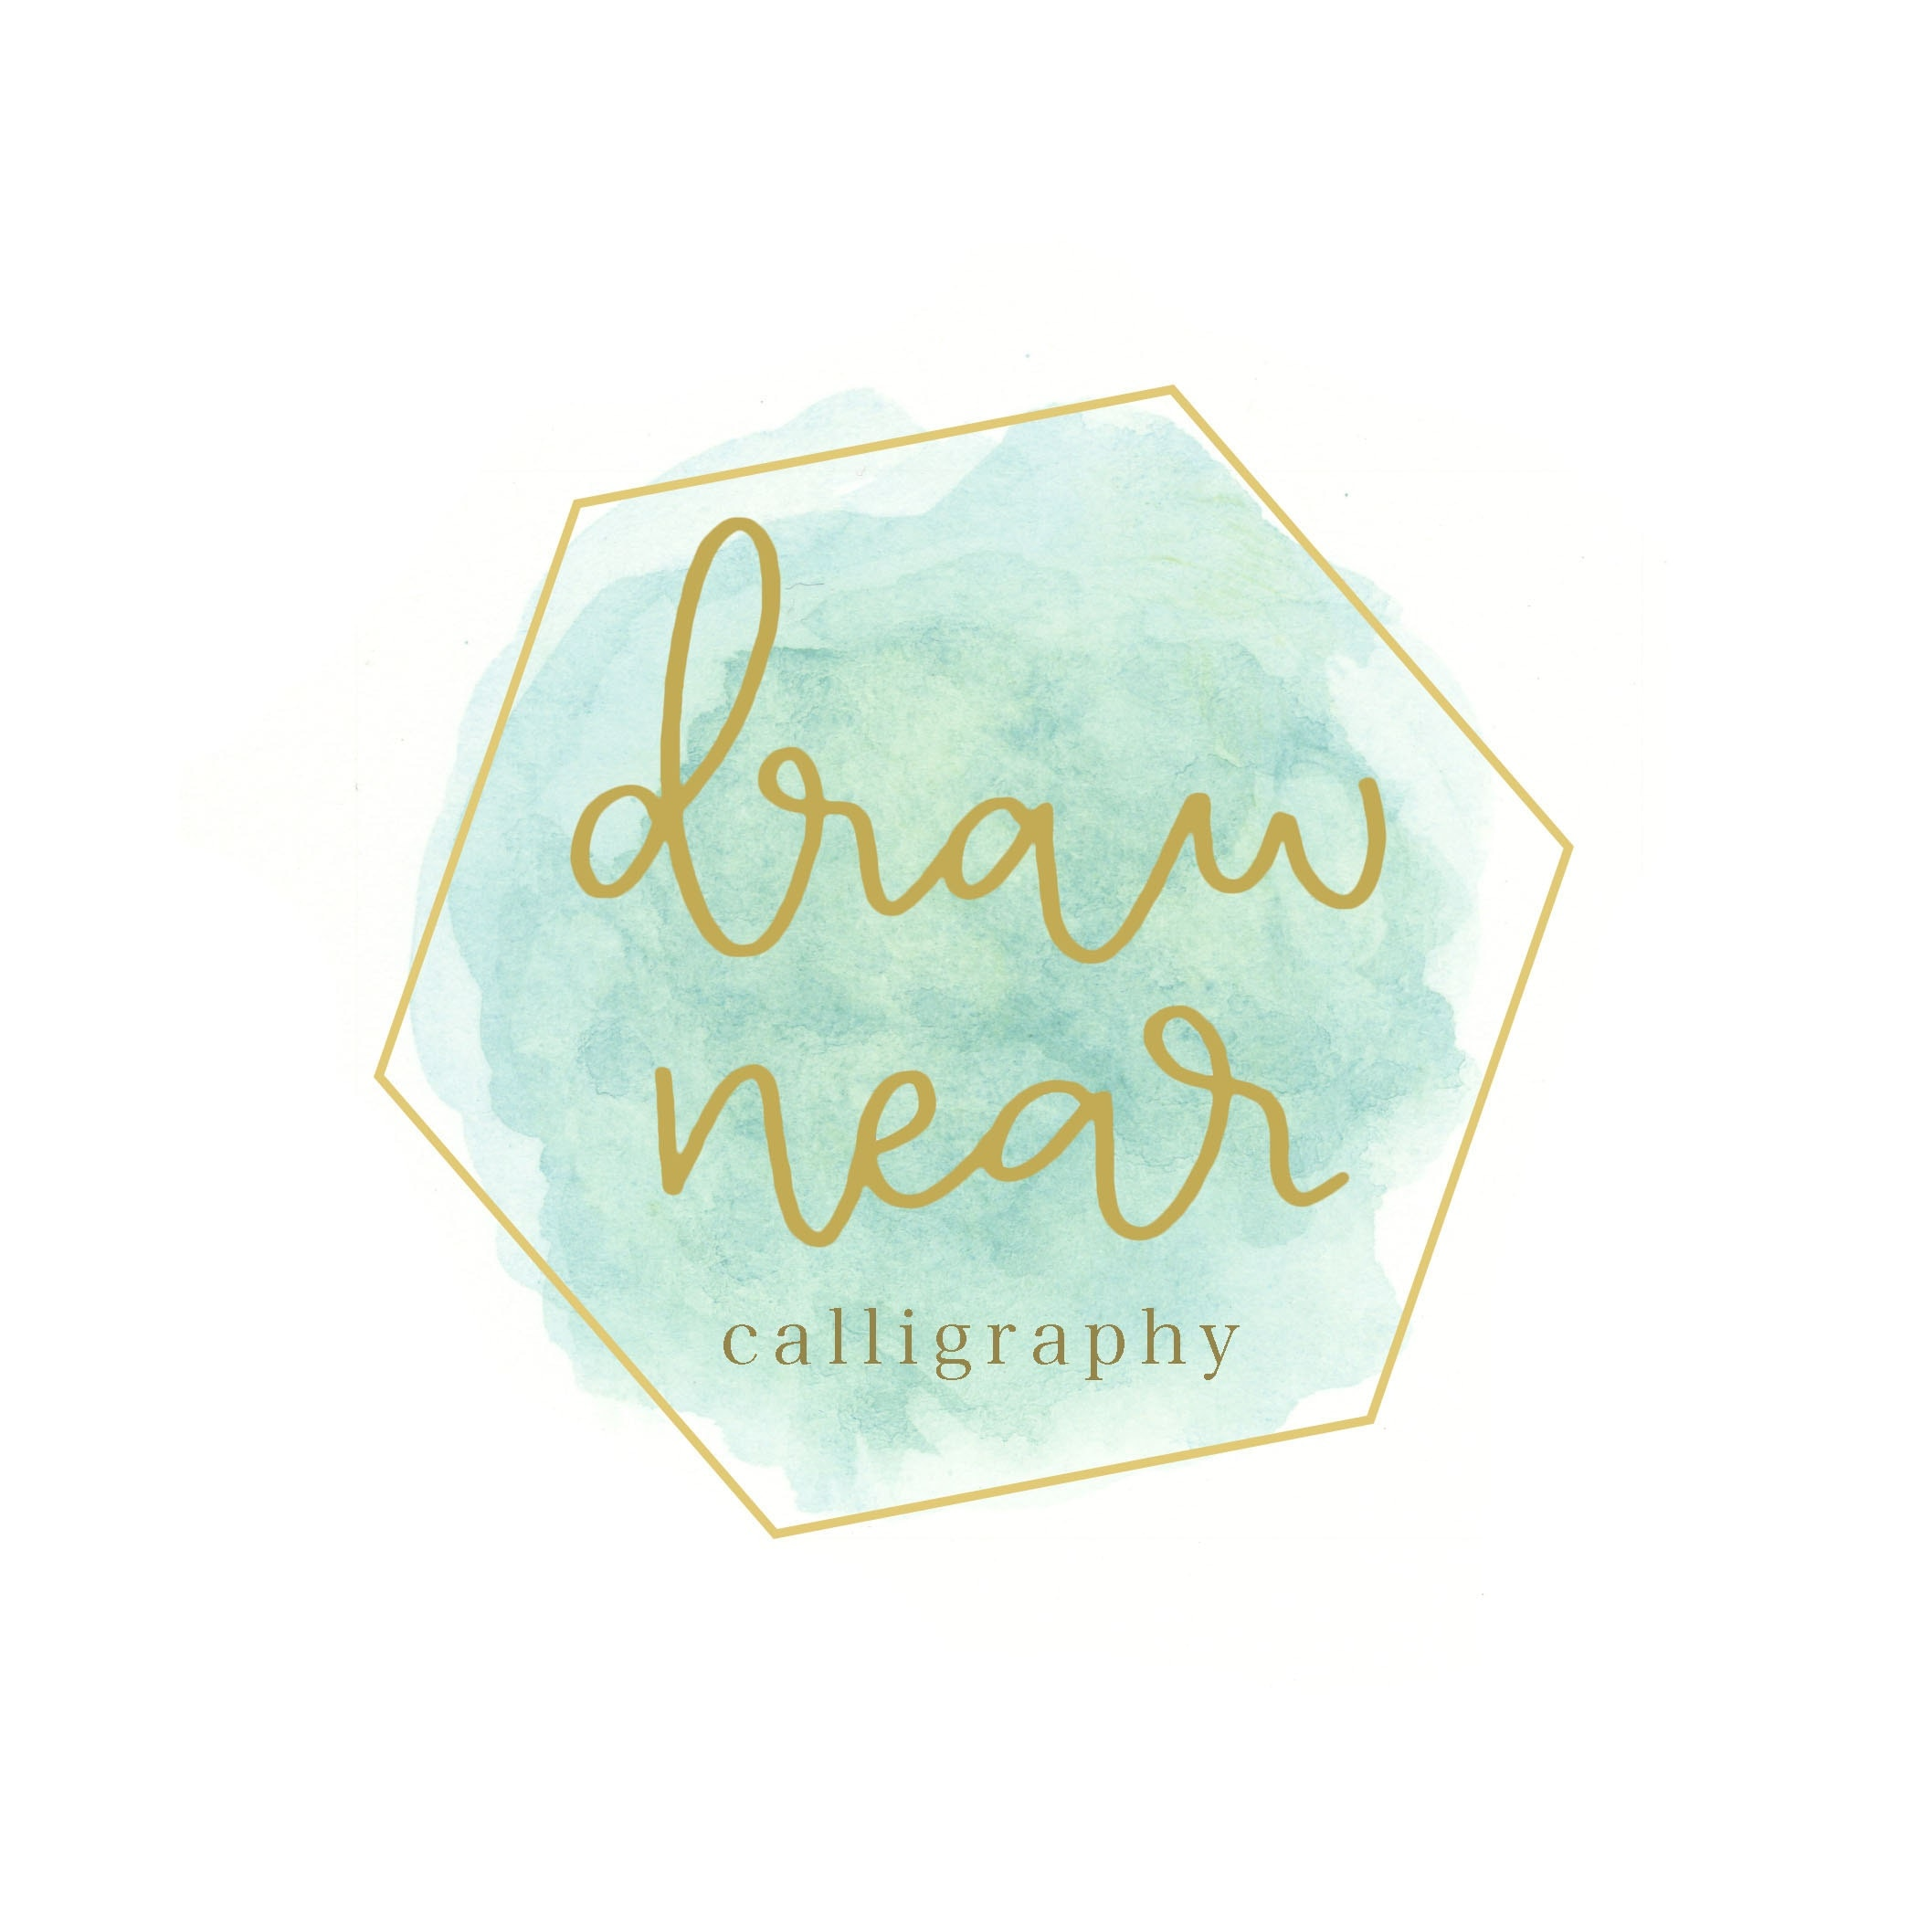 Watercolors Painted To Make Each Home A By Drawnearcalligraphy